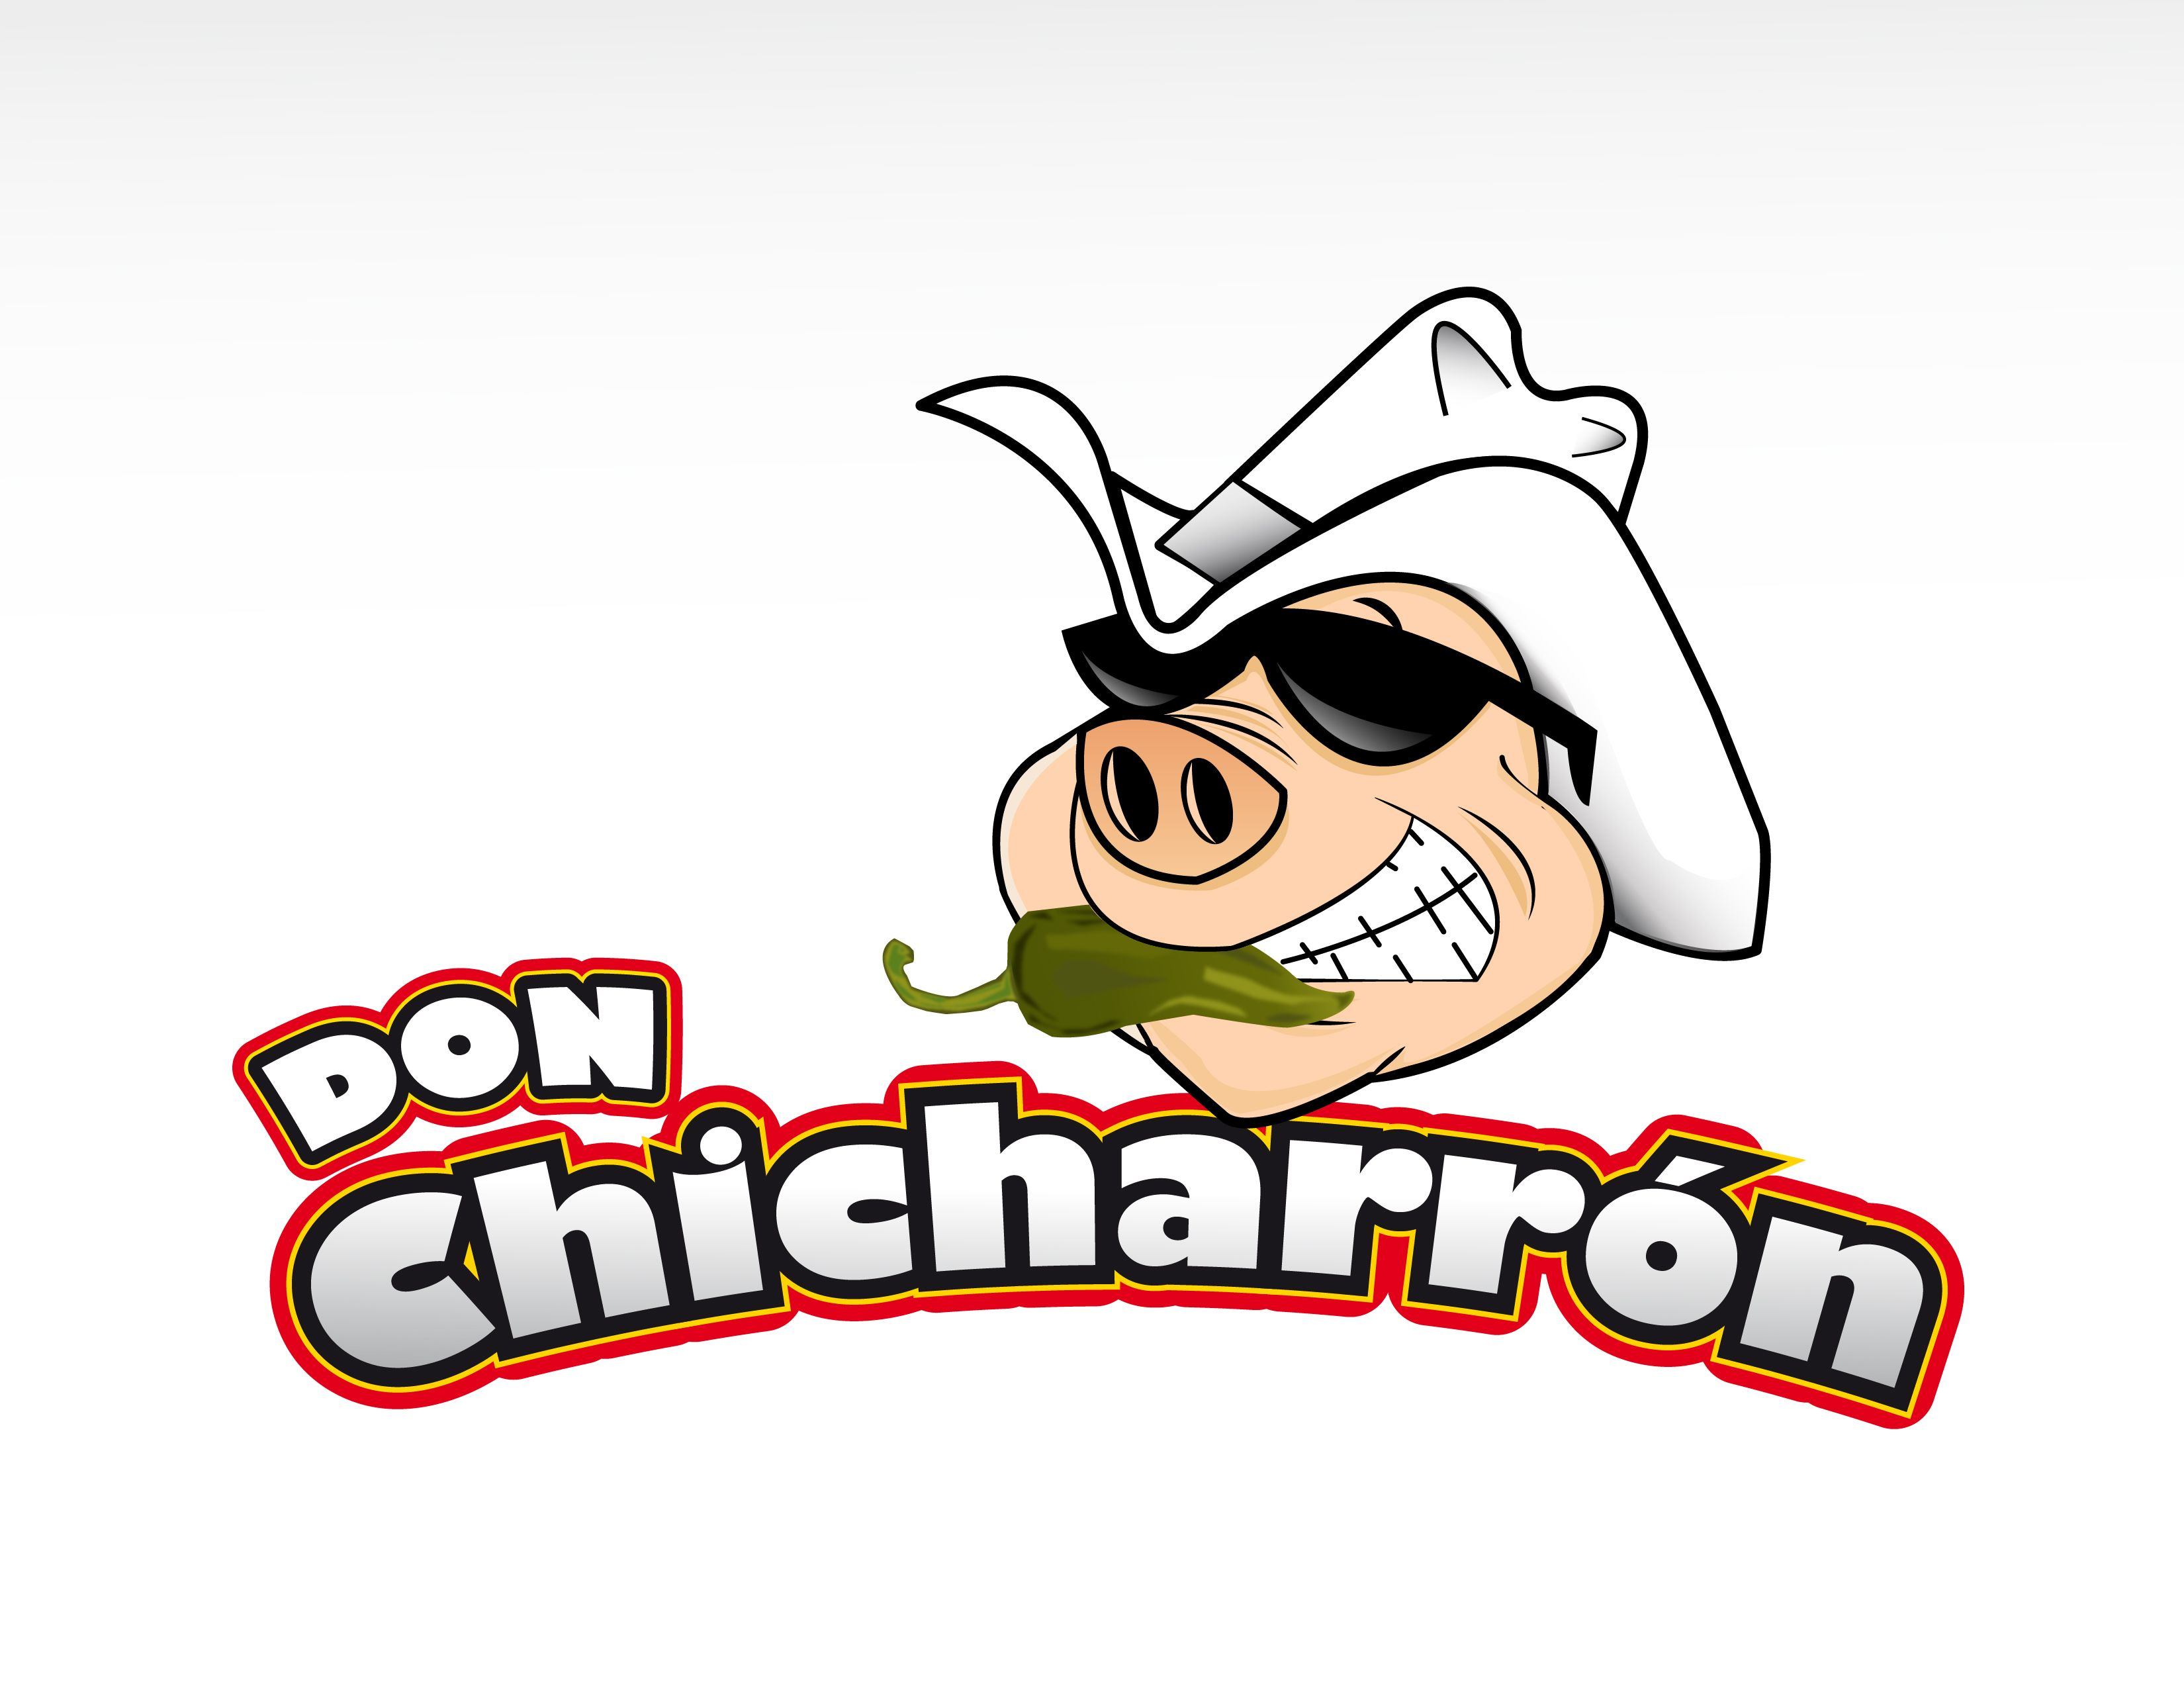 Logo For A Sale Of Food Carnitas And Chicharrones Logotipo Para